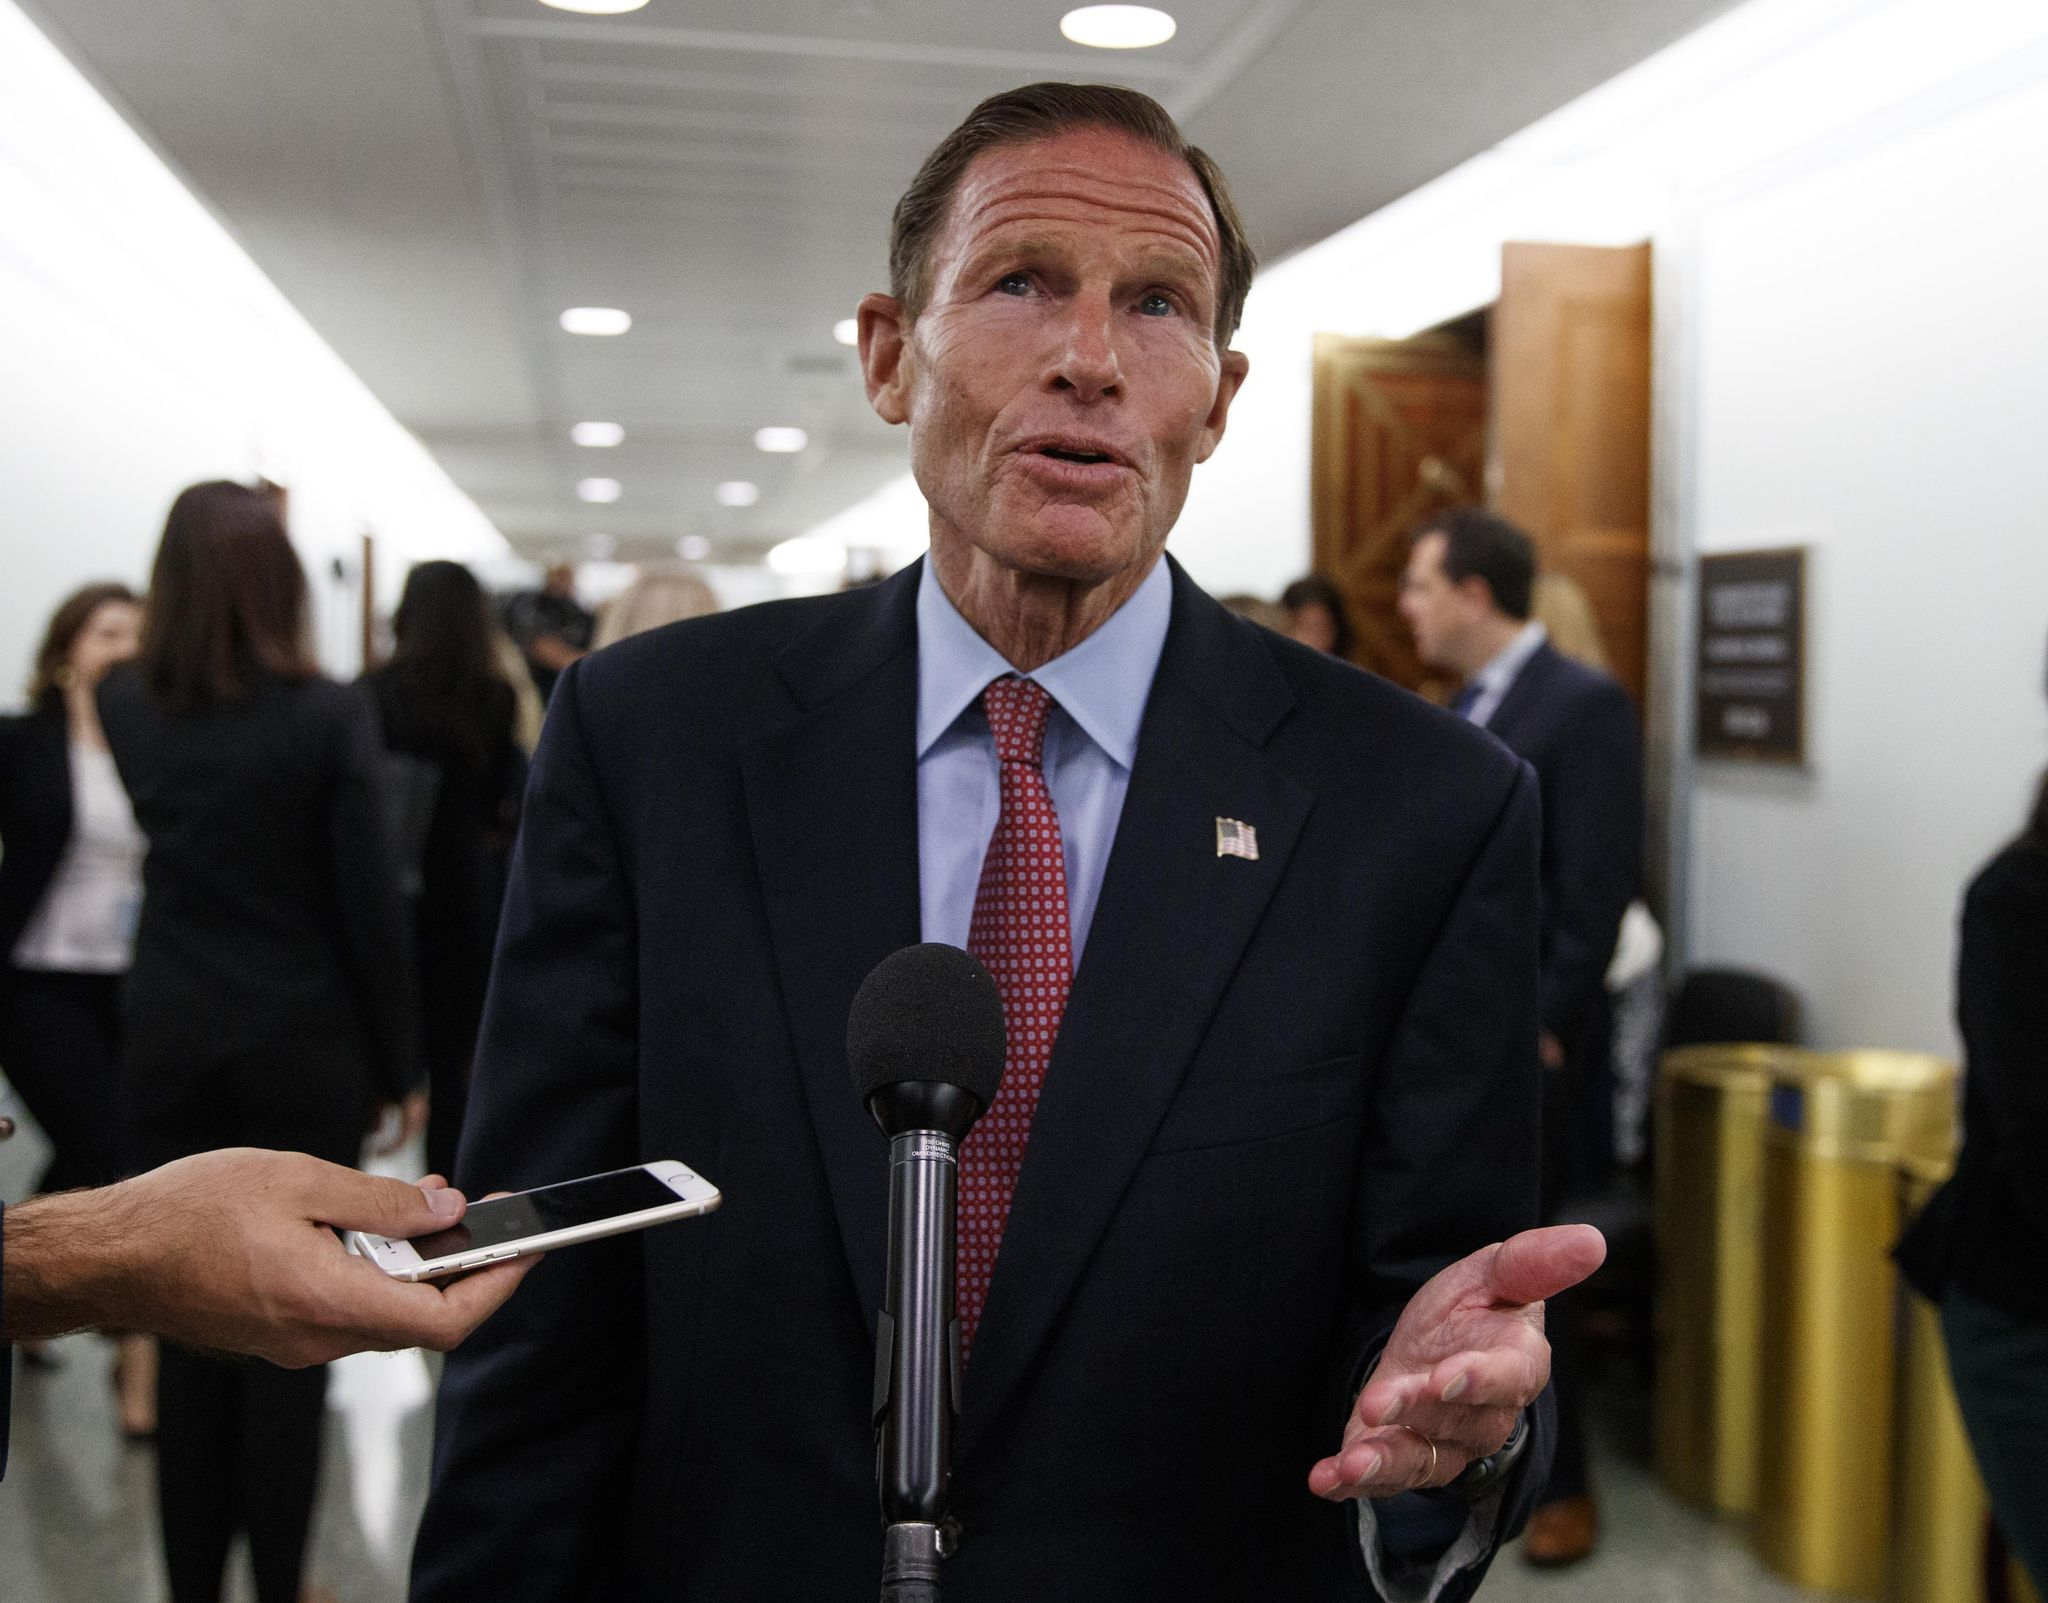 Richard Blumenthal demands 'ironclad' commitment from AG nominee Barr to release the Mueller report